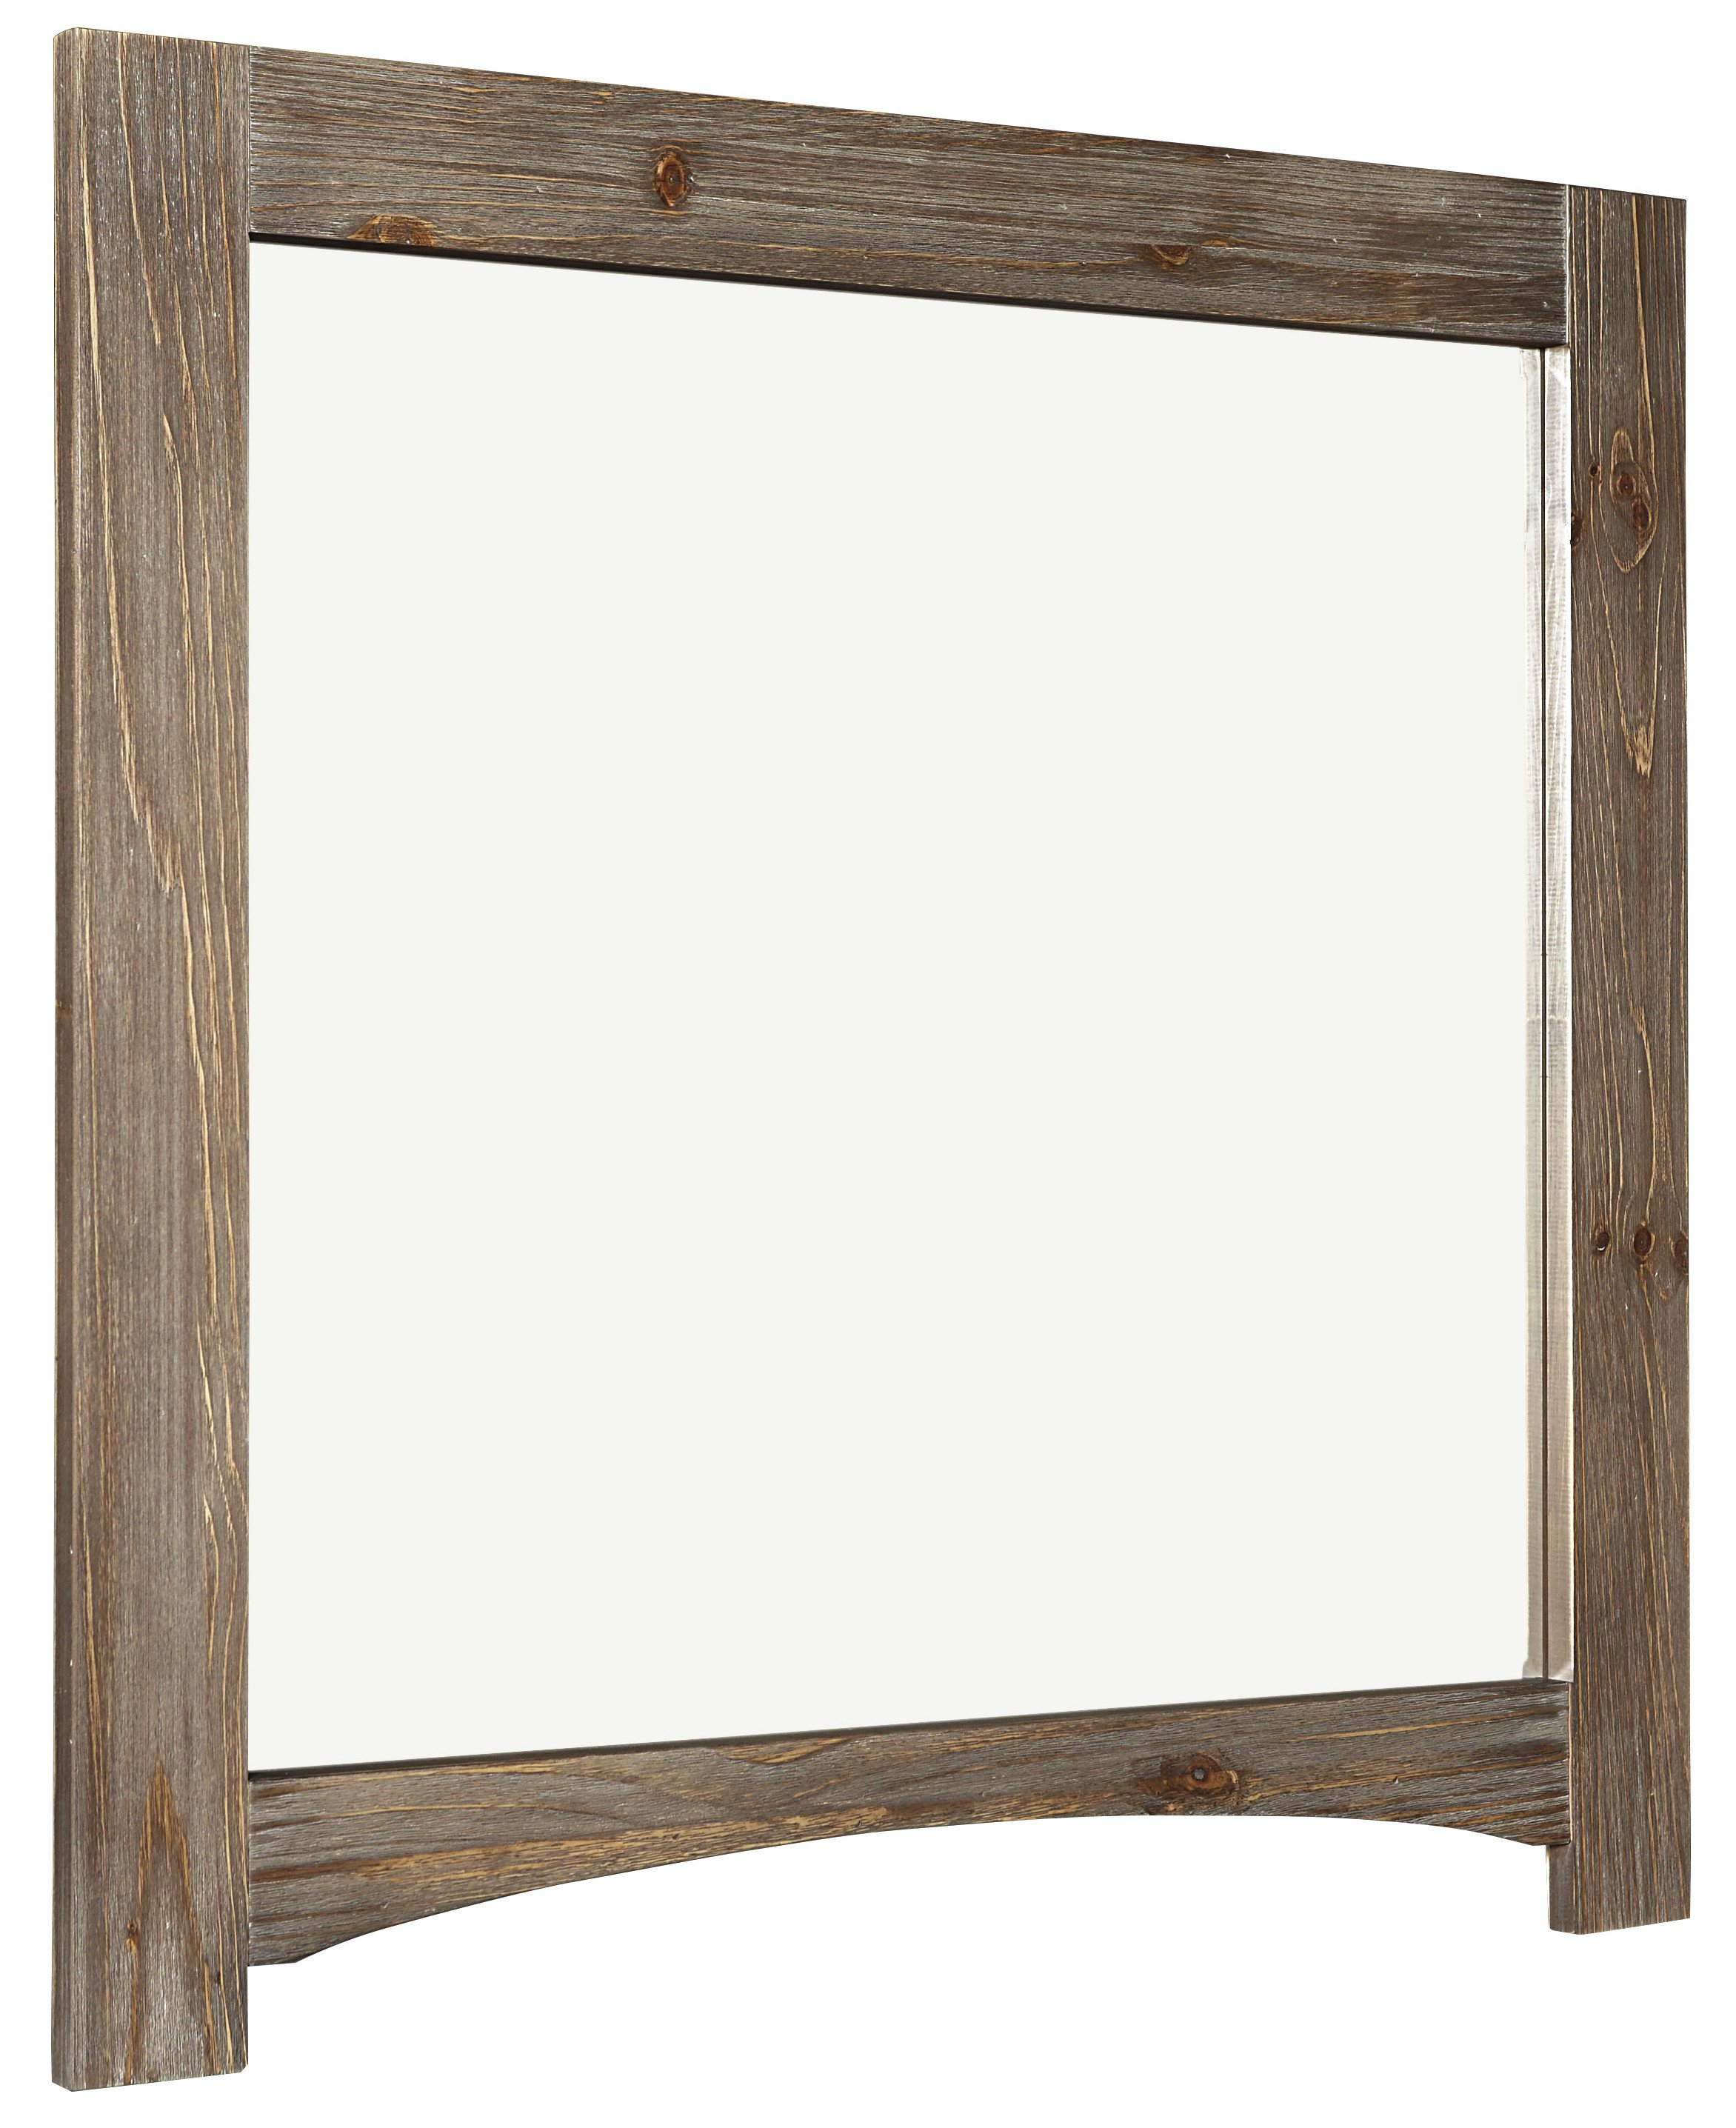 Alcott Hill Hernandez Landscape Square Dresser Mirror Intended For Polito Cottage/country Wall Mirrors (Image 2 of 20)